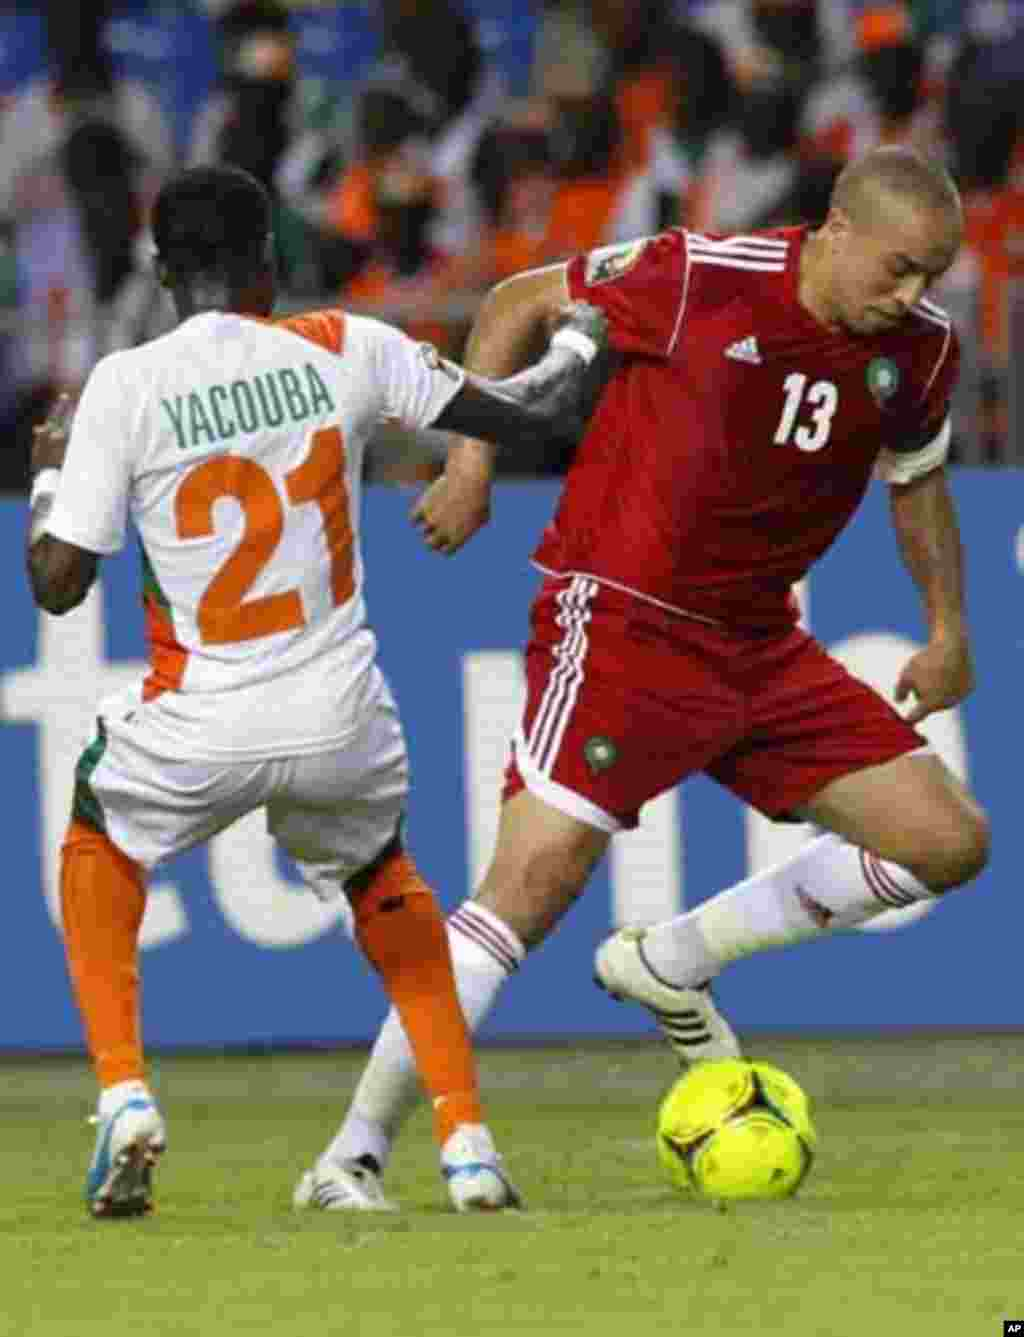 Morocco's Houssine Kharja (13) dribbles the ball against Niger's Seydou Ali Yacouba (21) during their final African Cup of Nations Group C soccer at the Stade De L'Amitie Stadium in Libreville, Gabon January 31, 2012.